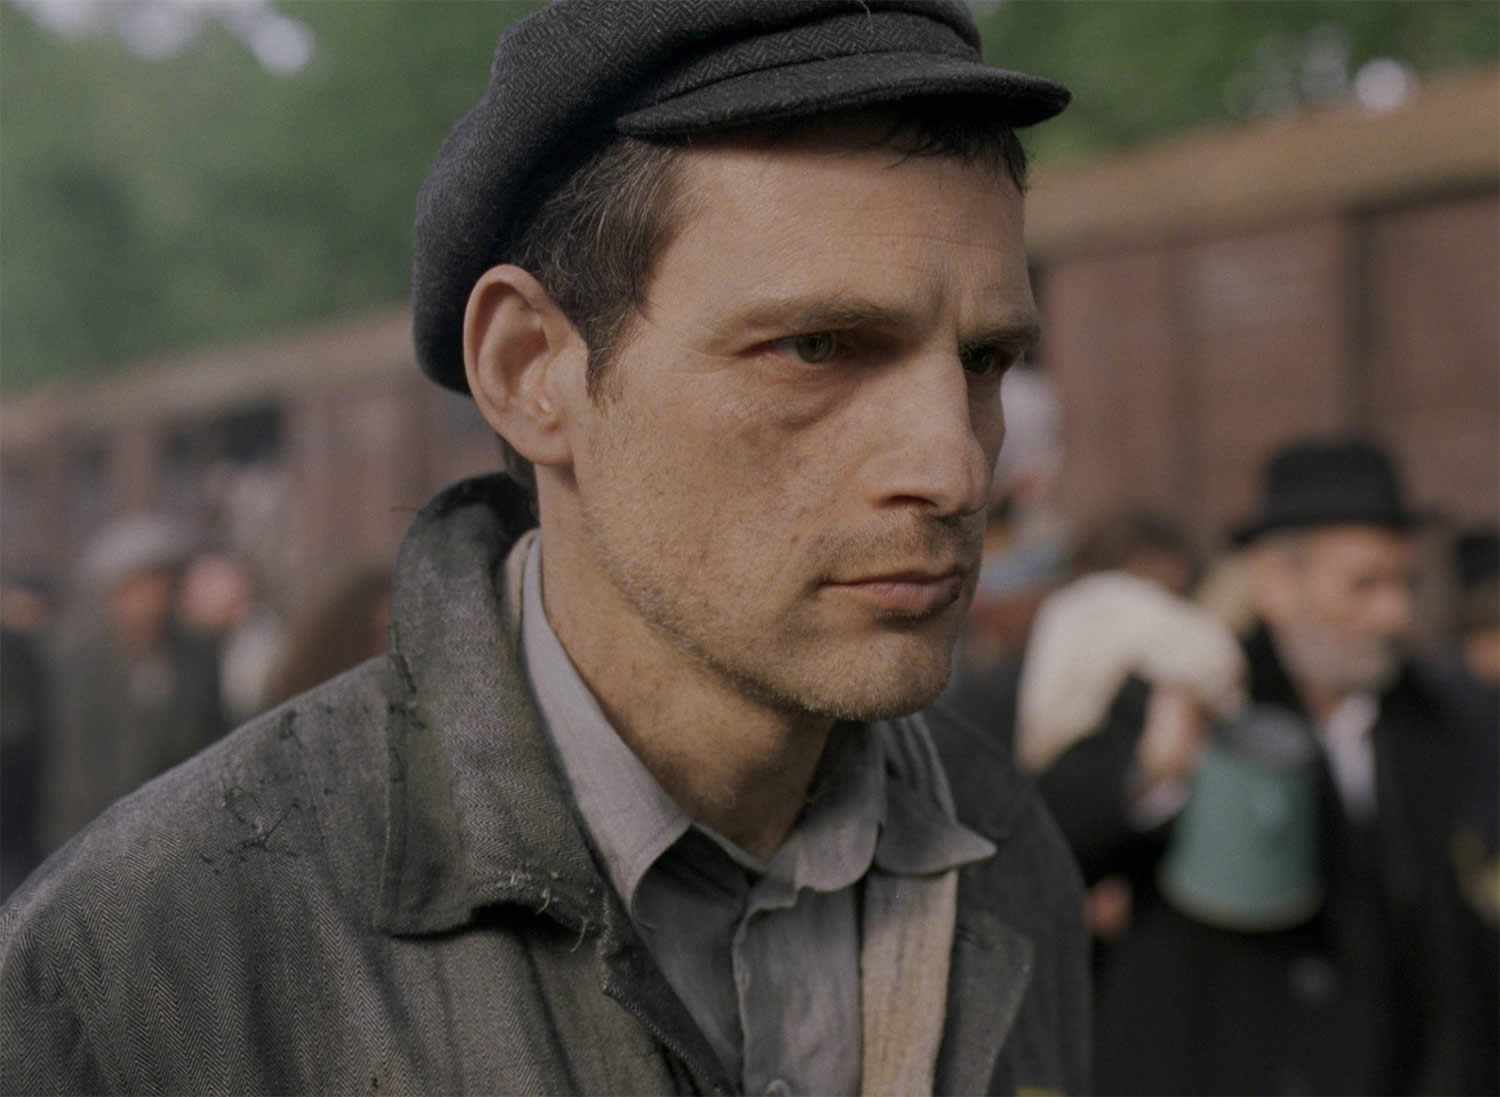 worker in son of saul